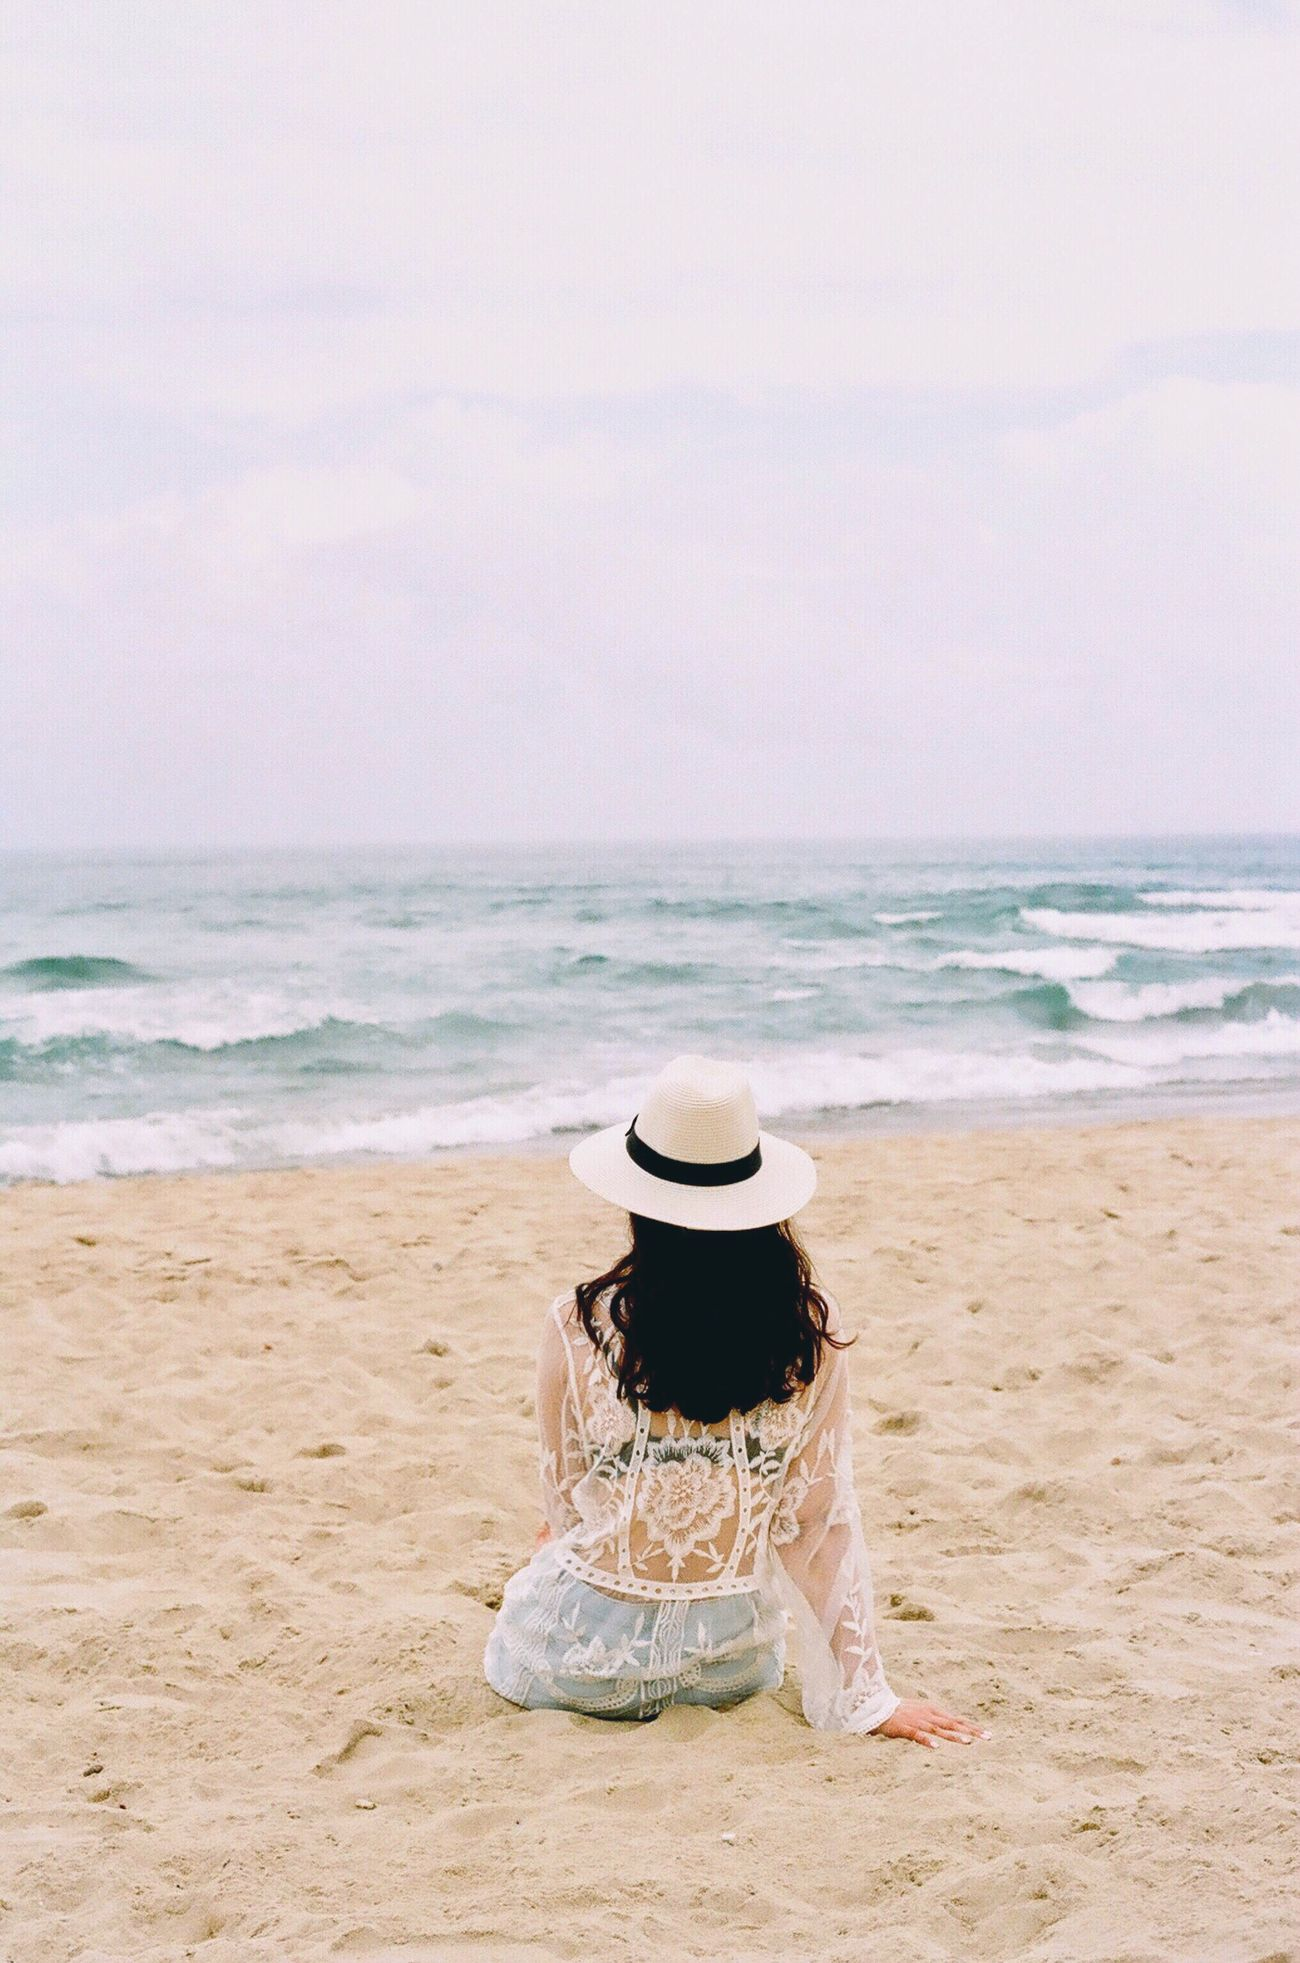 Film Photography Beach Sea Outdoors Nature Sky Sand Filmisnotdead Relaxing Vietnam Danang Mykhebeach Holiday Calm Getsomerest One Person Analogue Photography Vacation Fashion Woman Hat